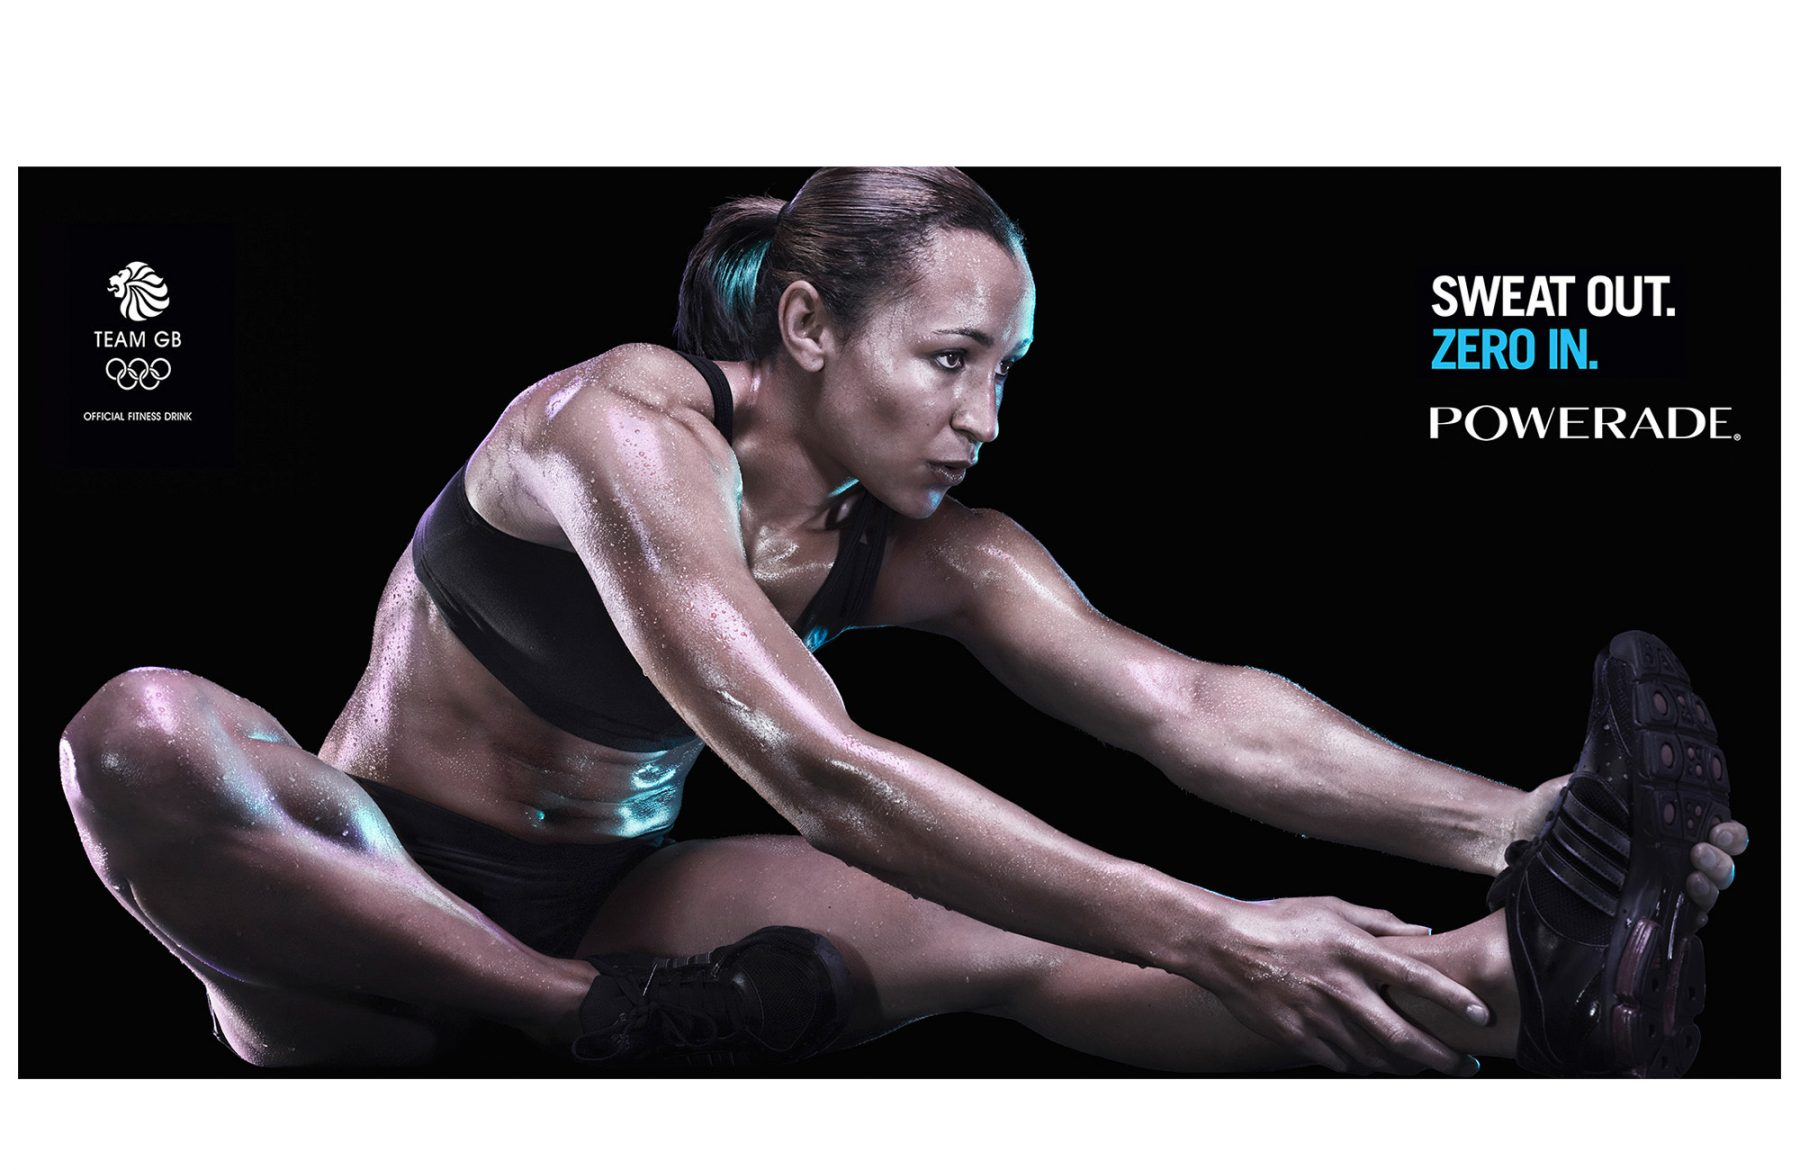 Powerade Jessica Ennis - 1 of 1